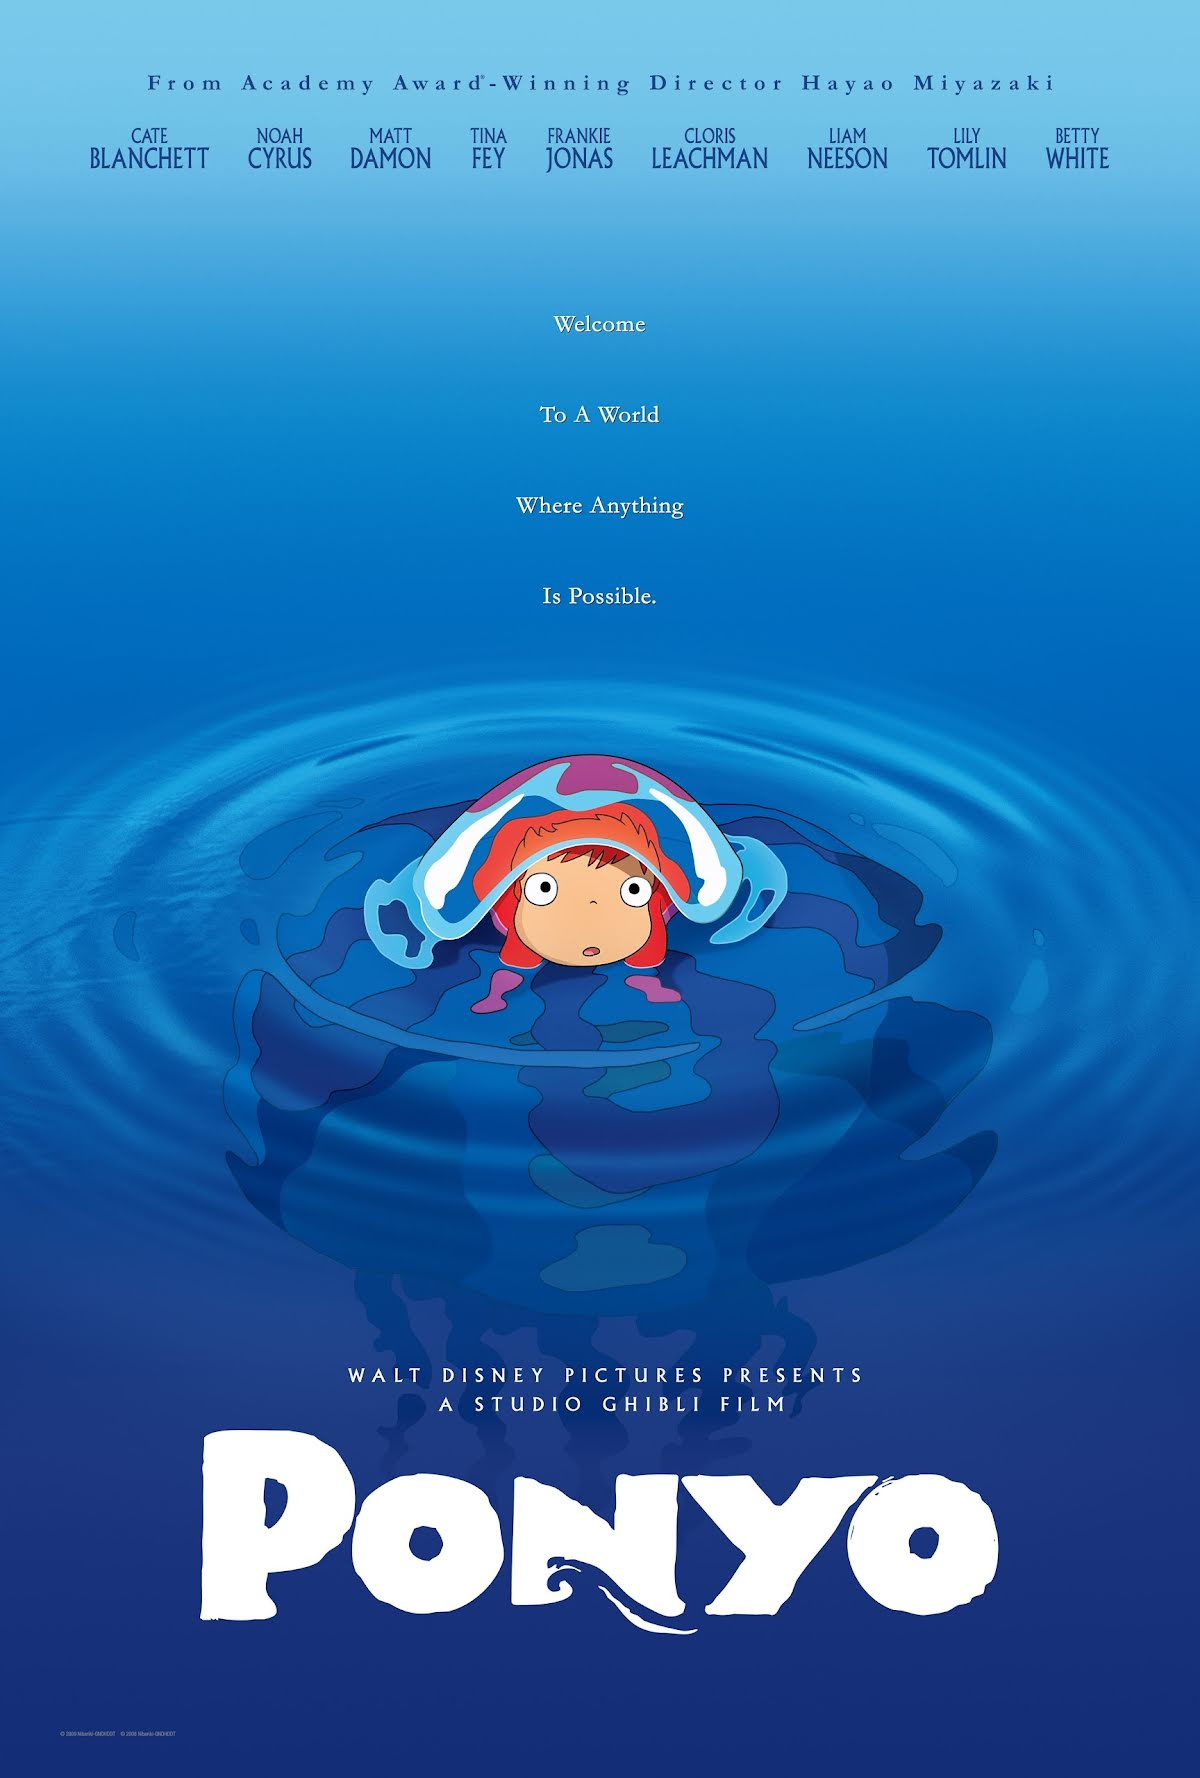 Ponyo en el acantilado - Gake no Ue no Ponyo - Ponyo on the Cliff by the Sea (2008)